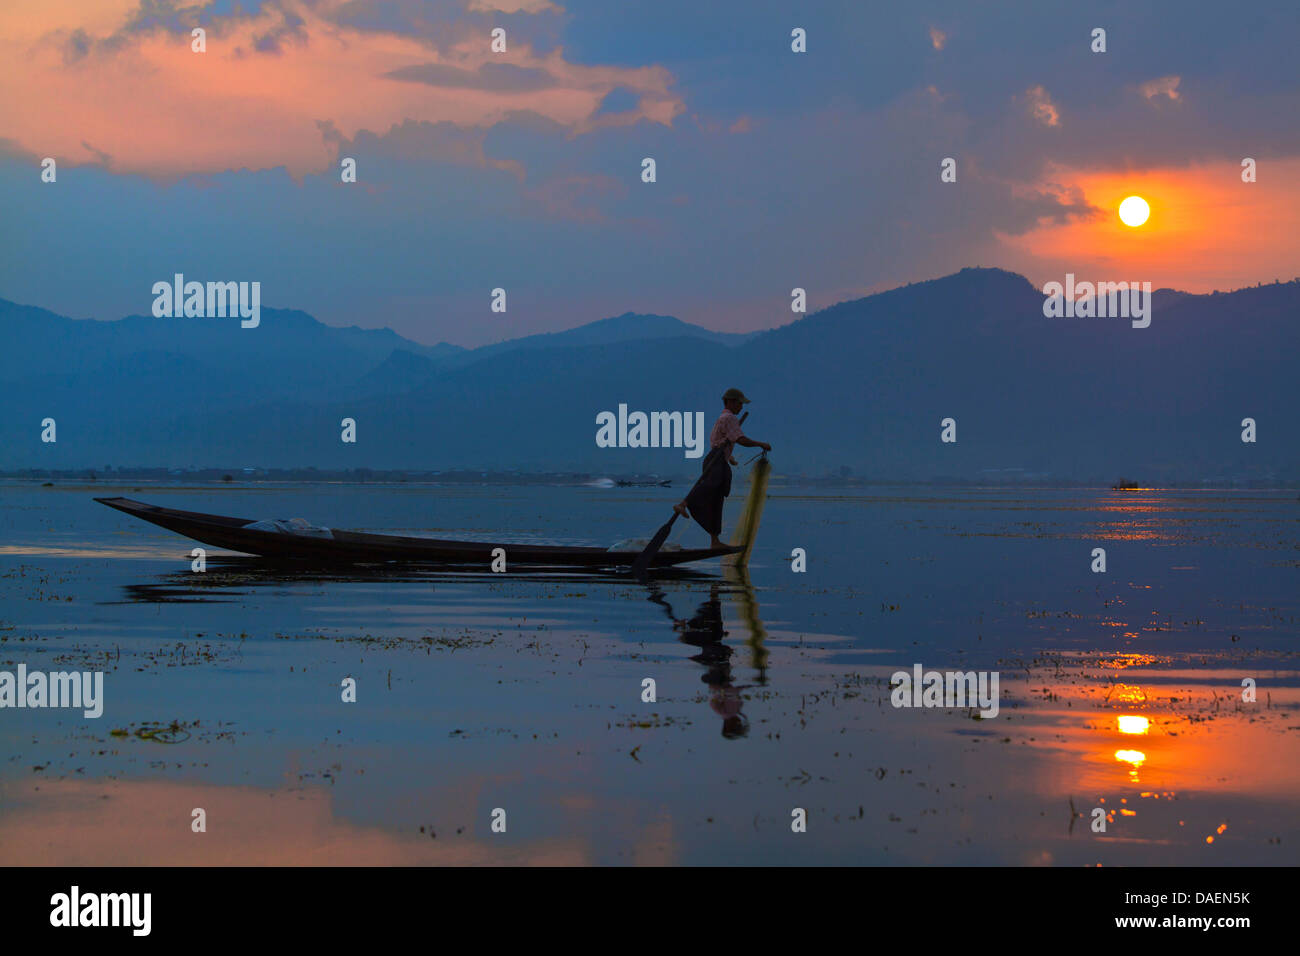 FISHING at dawn is still done in the traditonal way with small wooden boats, fishing nets and leg rowing - INLE - Stock Image